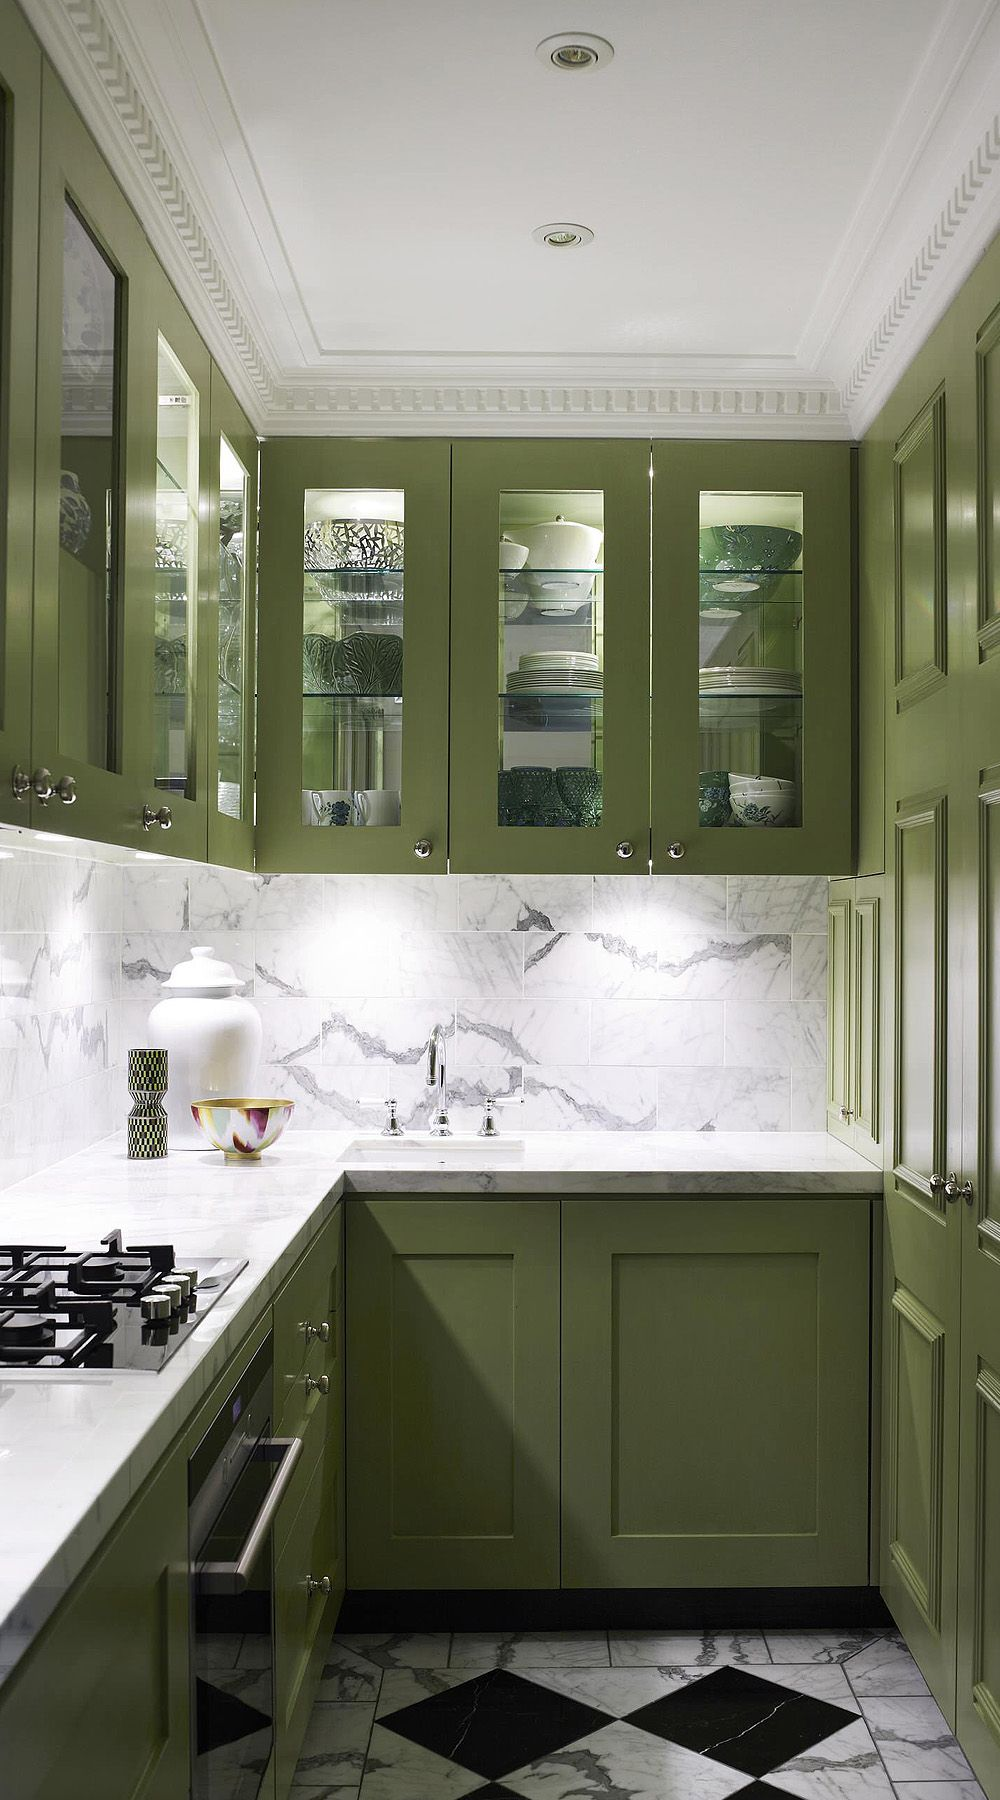 34 Top Green Kitchen Cabinets Good For Kitchen Get Ideas In 2020 Dark Green Kitchen Kitchen Design Small Green Kitchen Cabinets